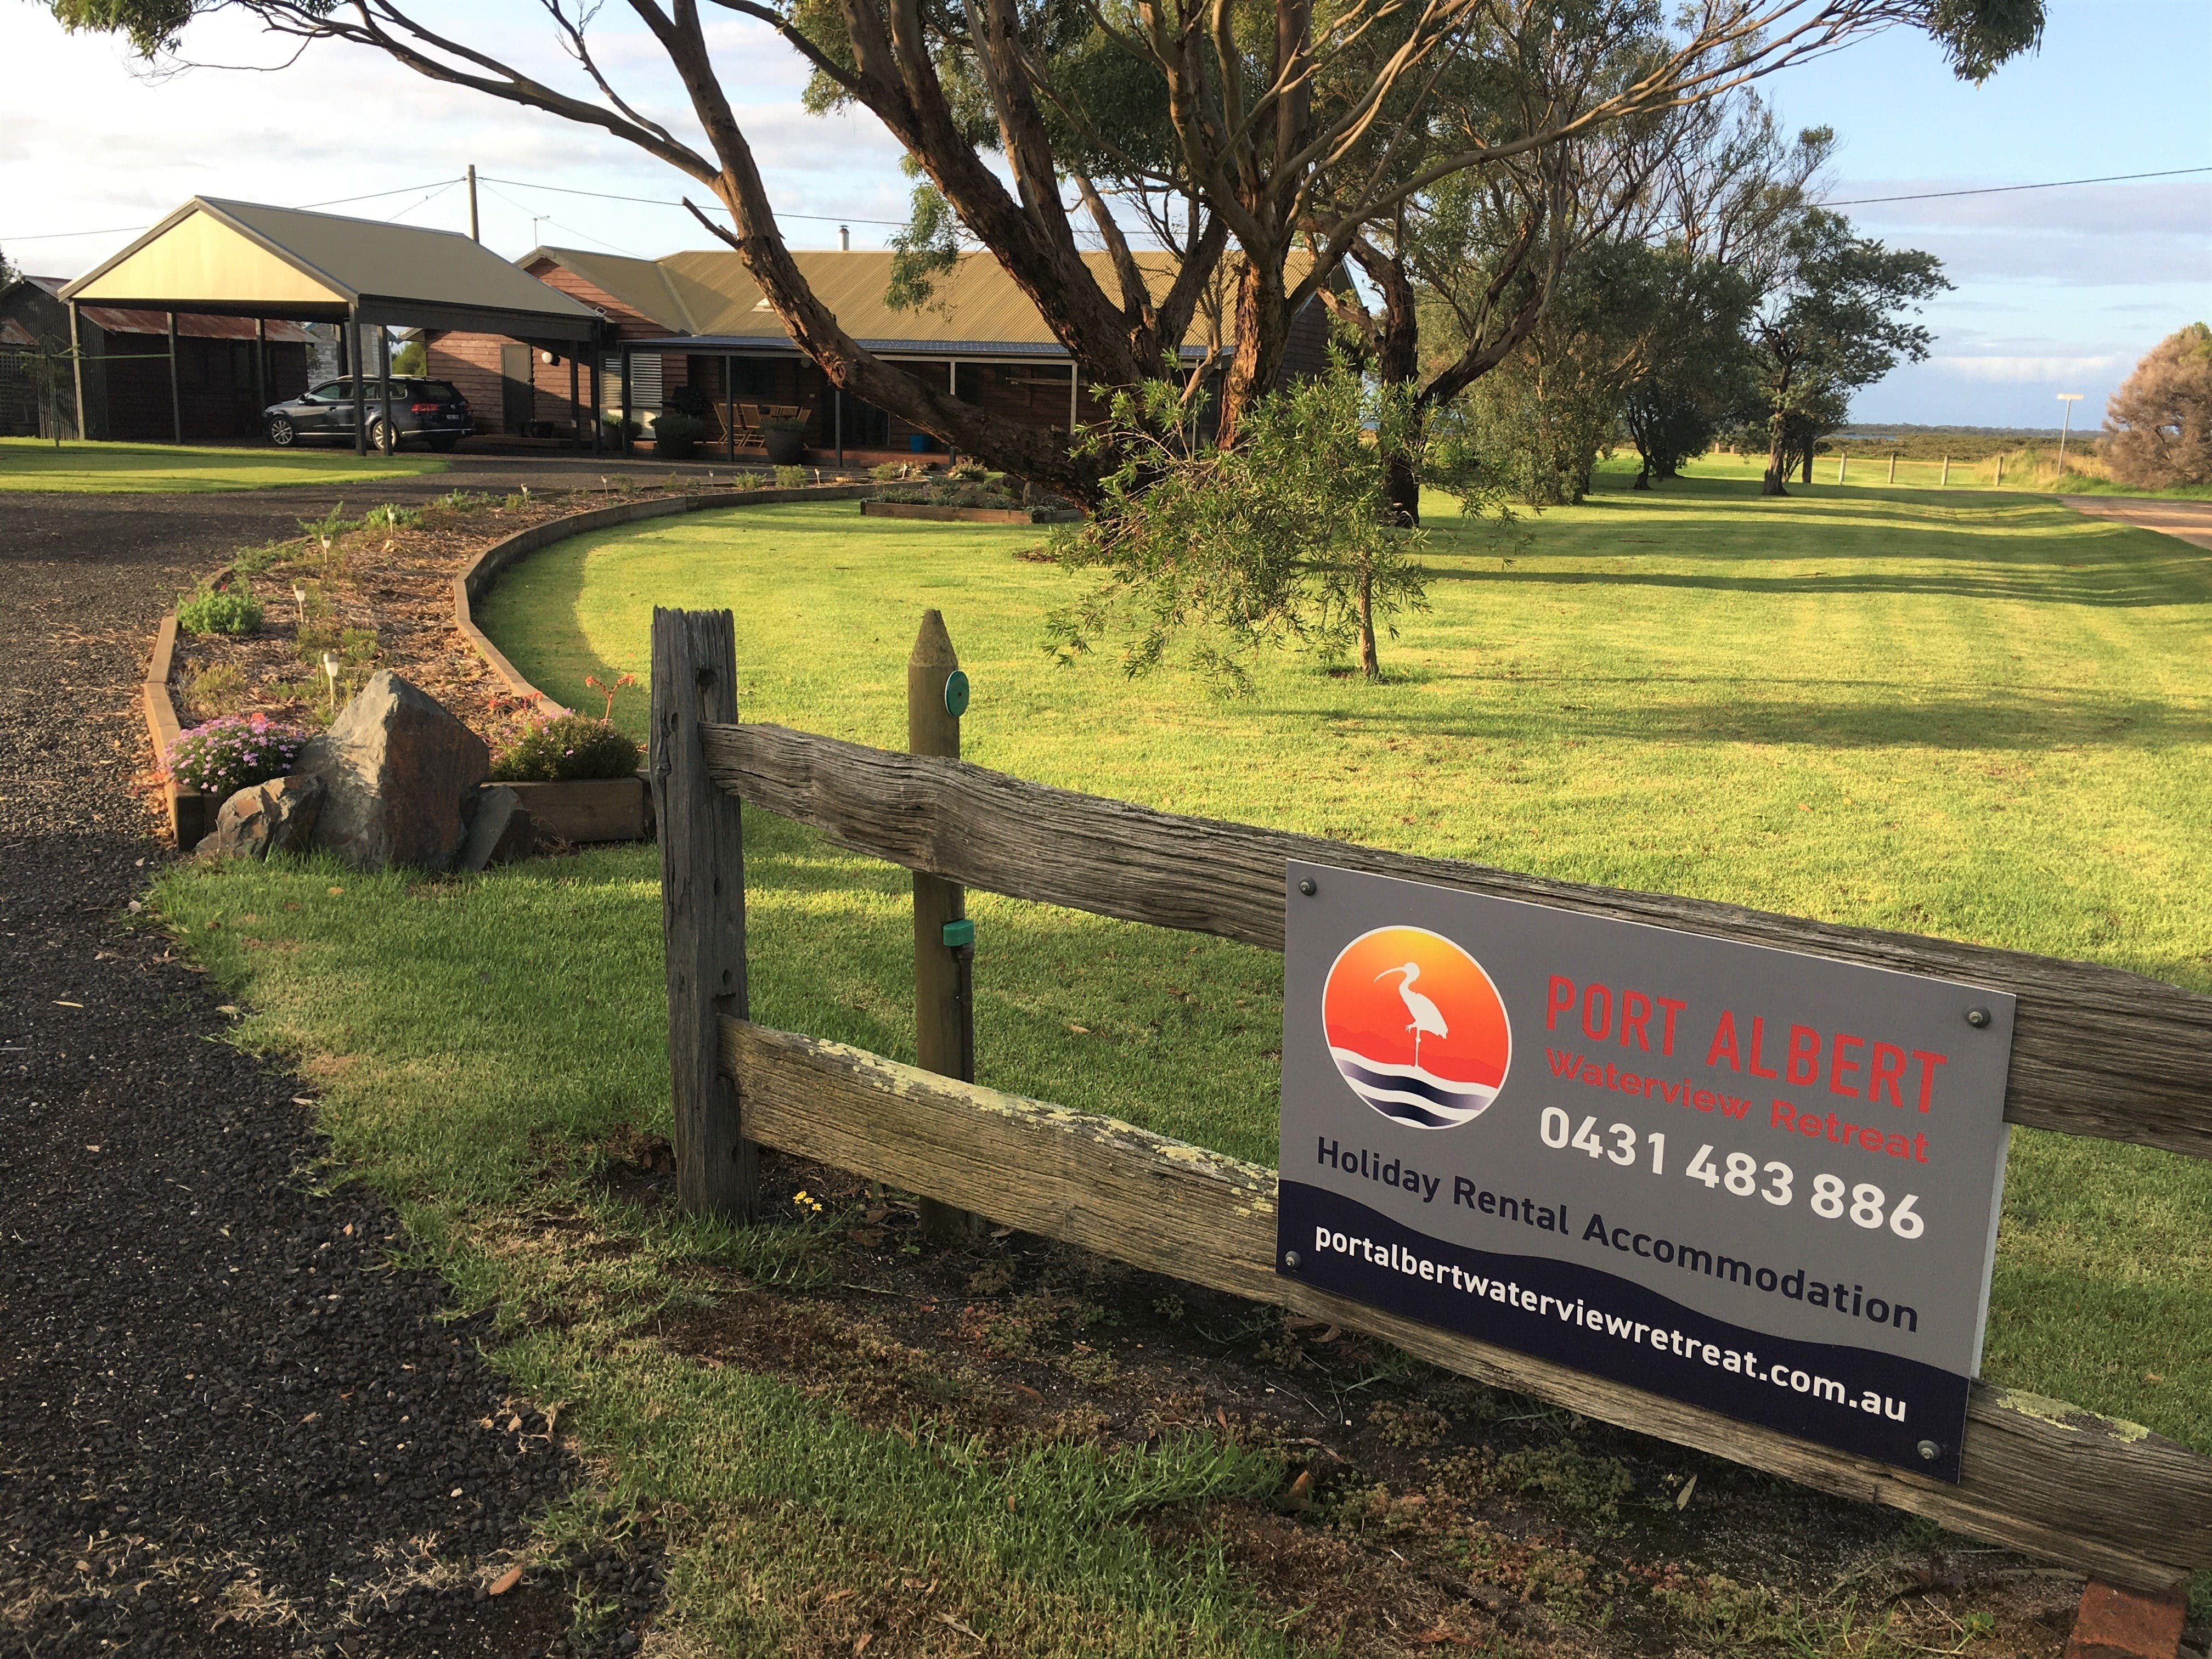 Port Albert Waterview Retreat - WA Accommodation